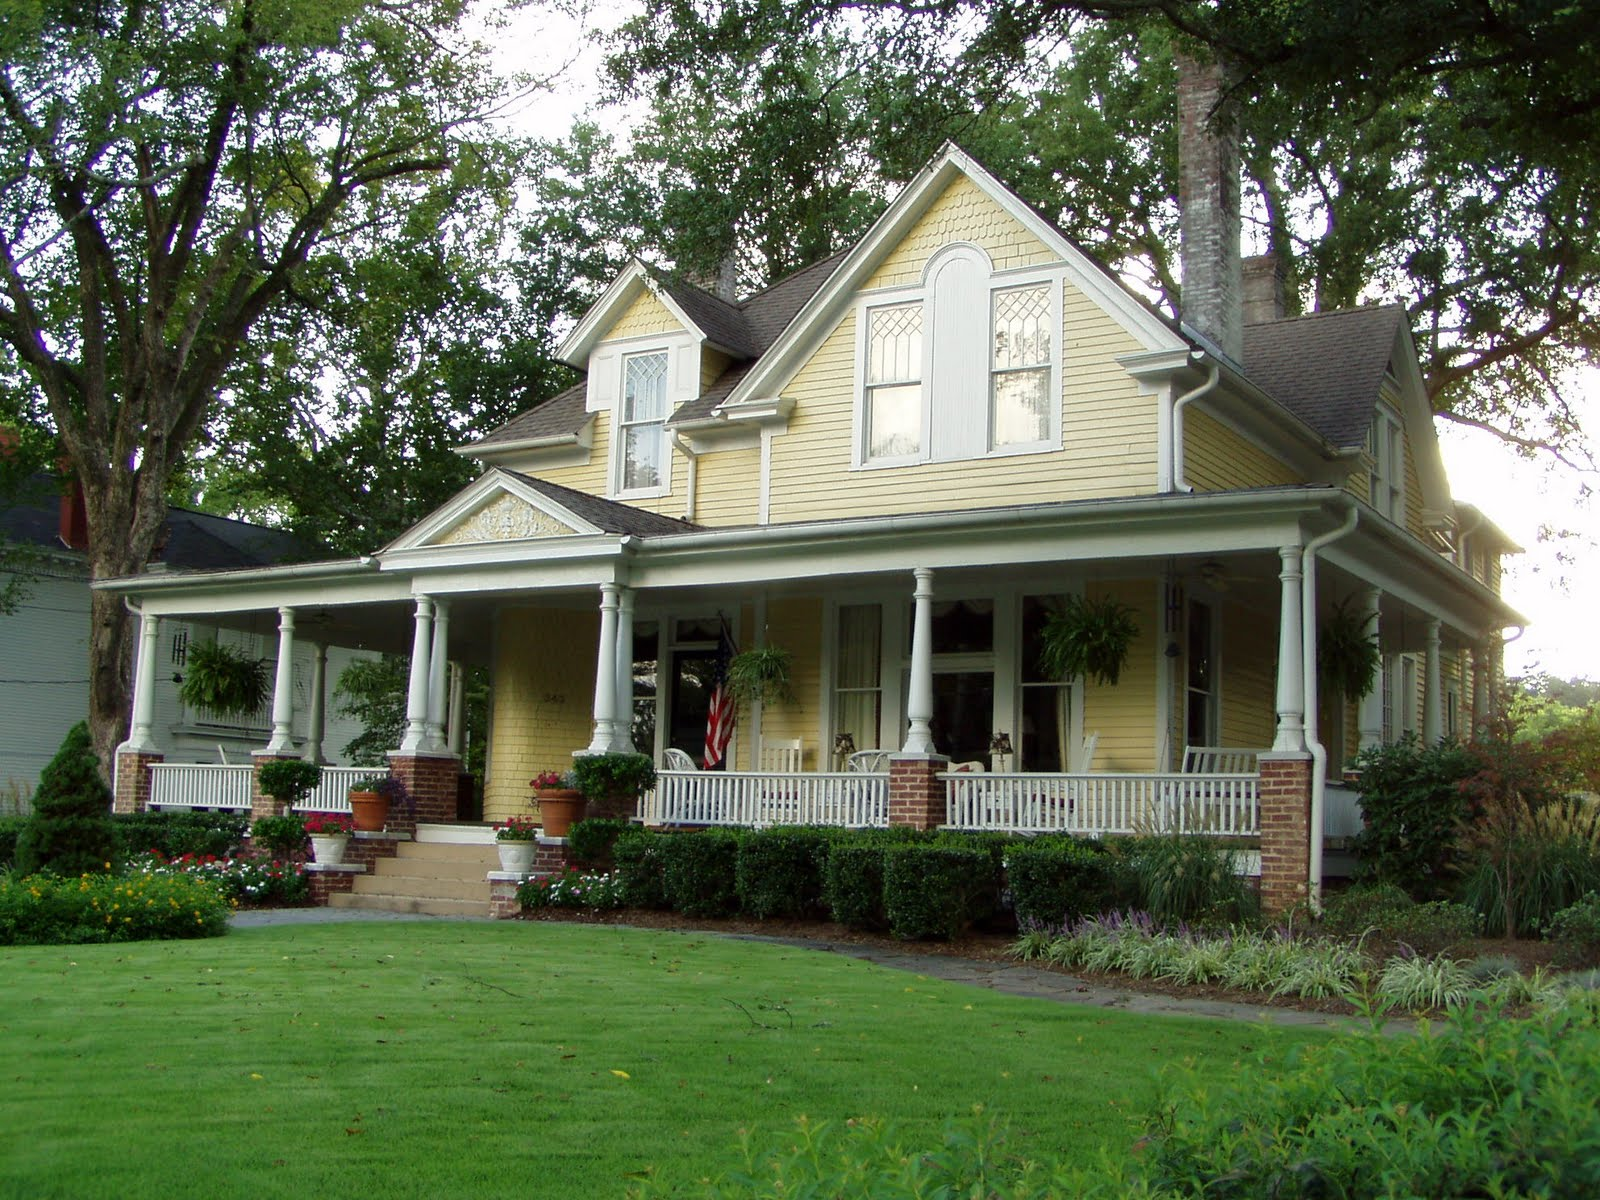 Let s pretend it s summertime again and we ll go for a for Single story house with wrap around porch